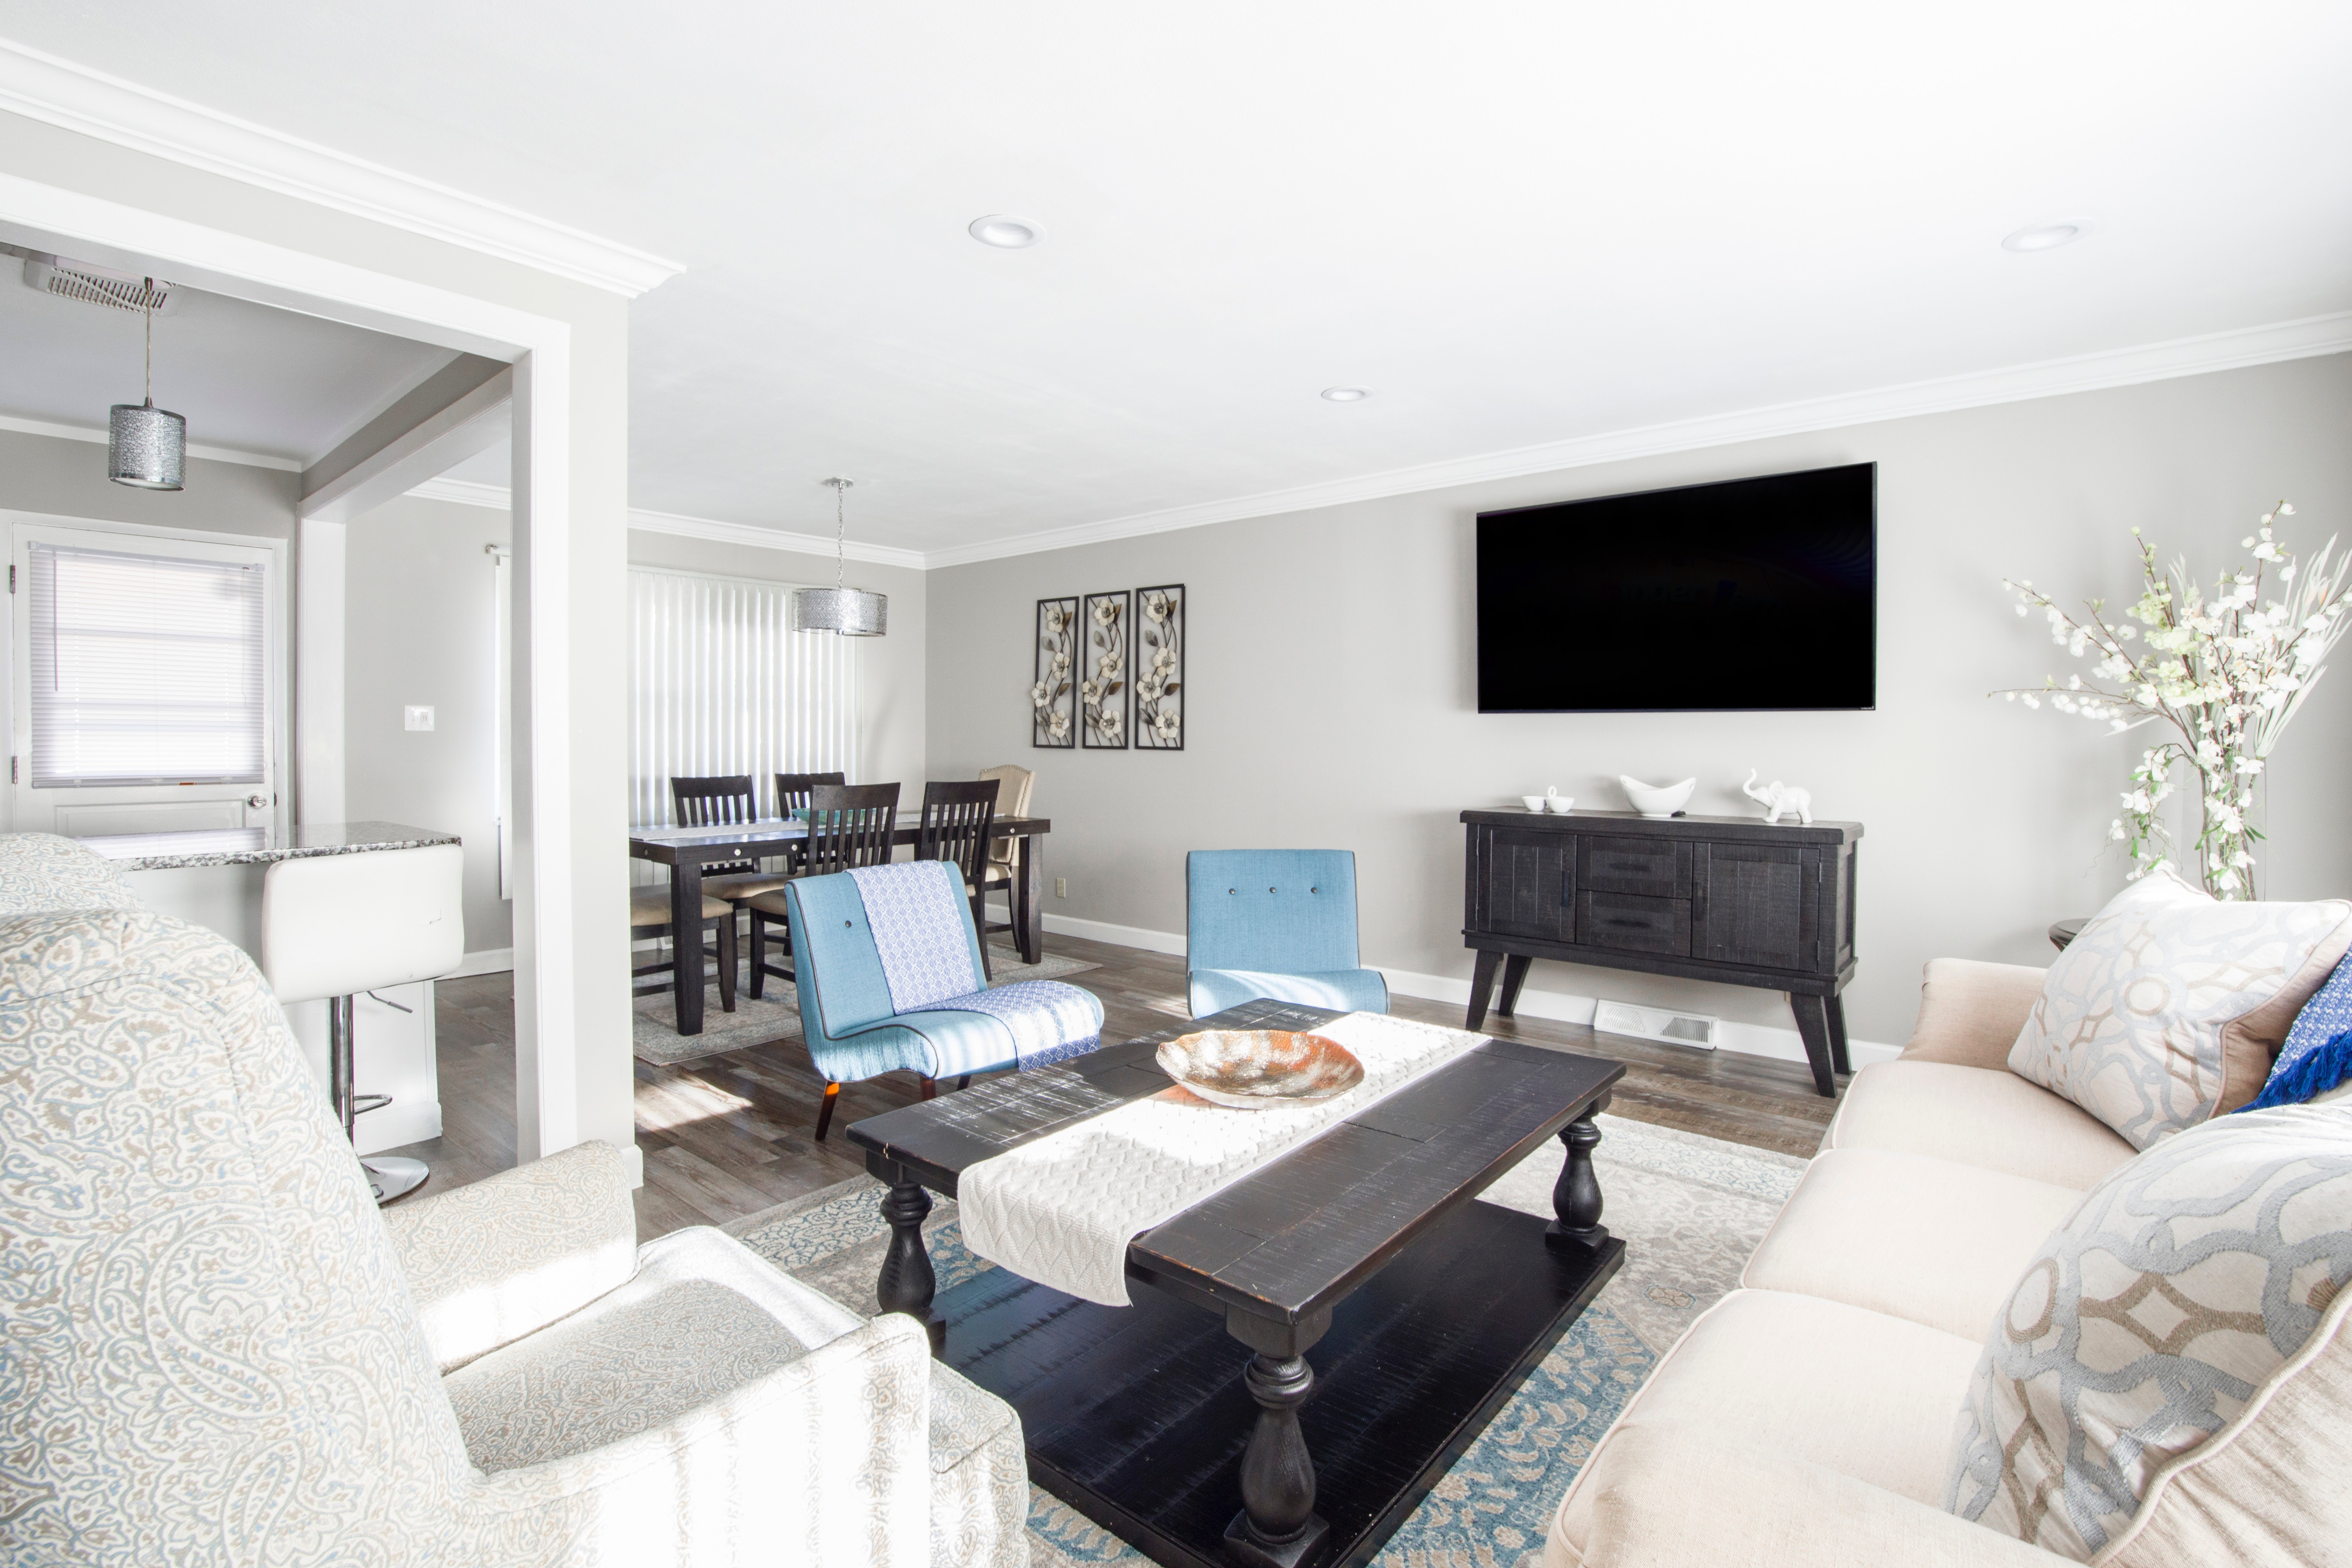 65 Inch Tv Wall Mounts Everything You Need To Know